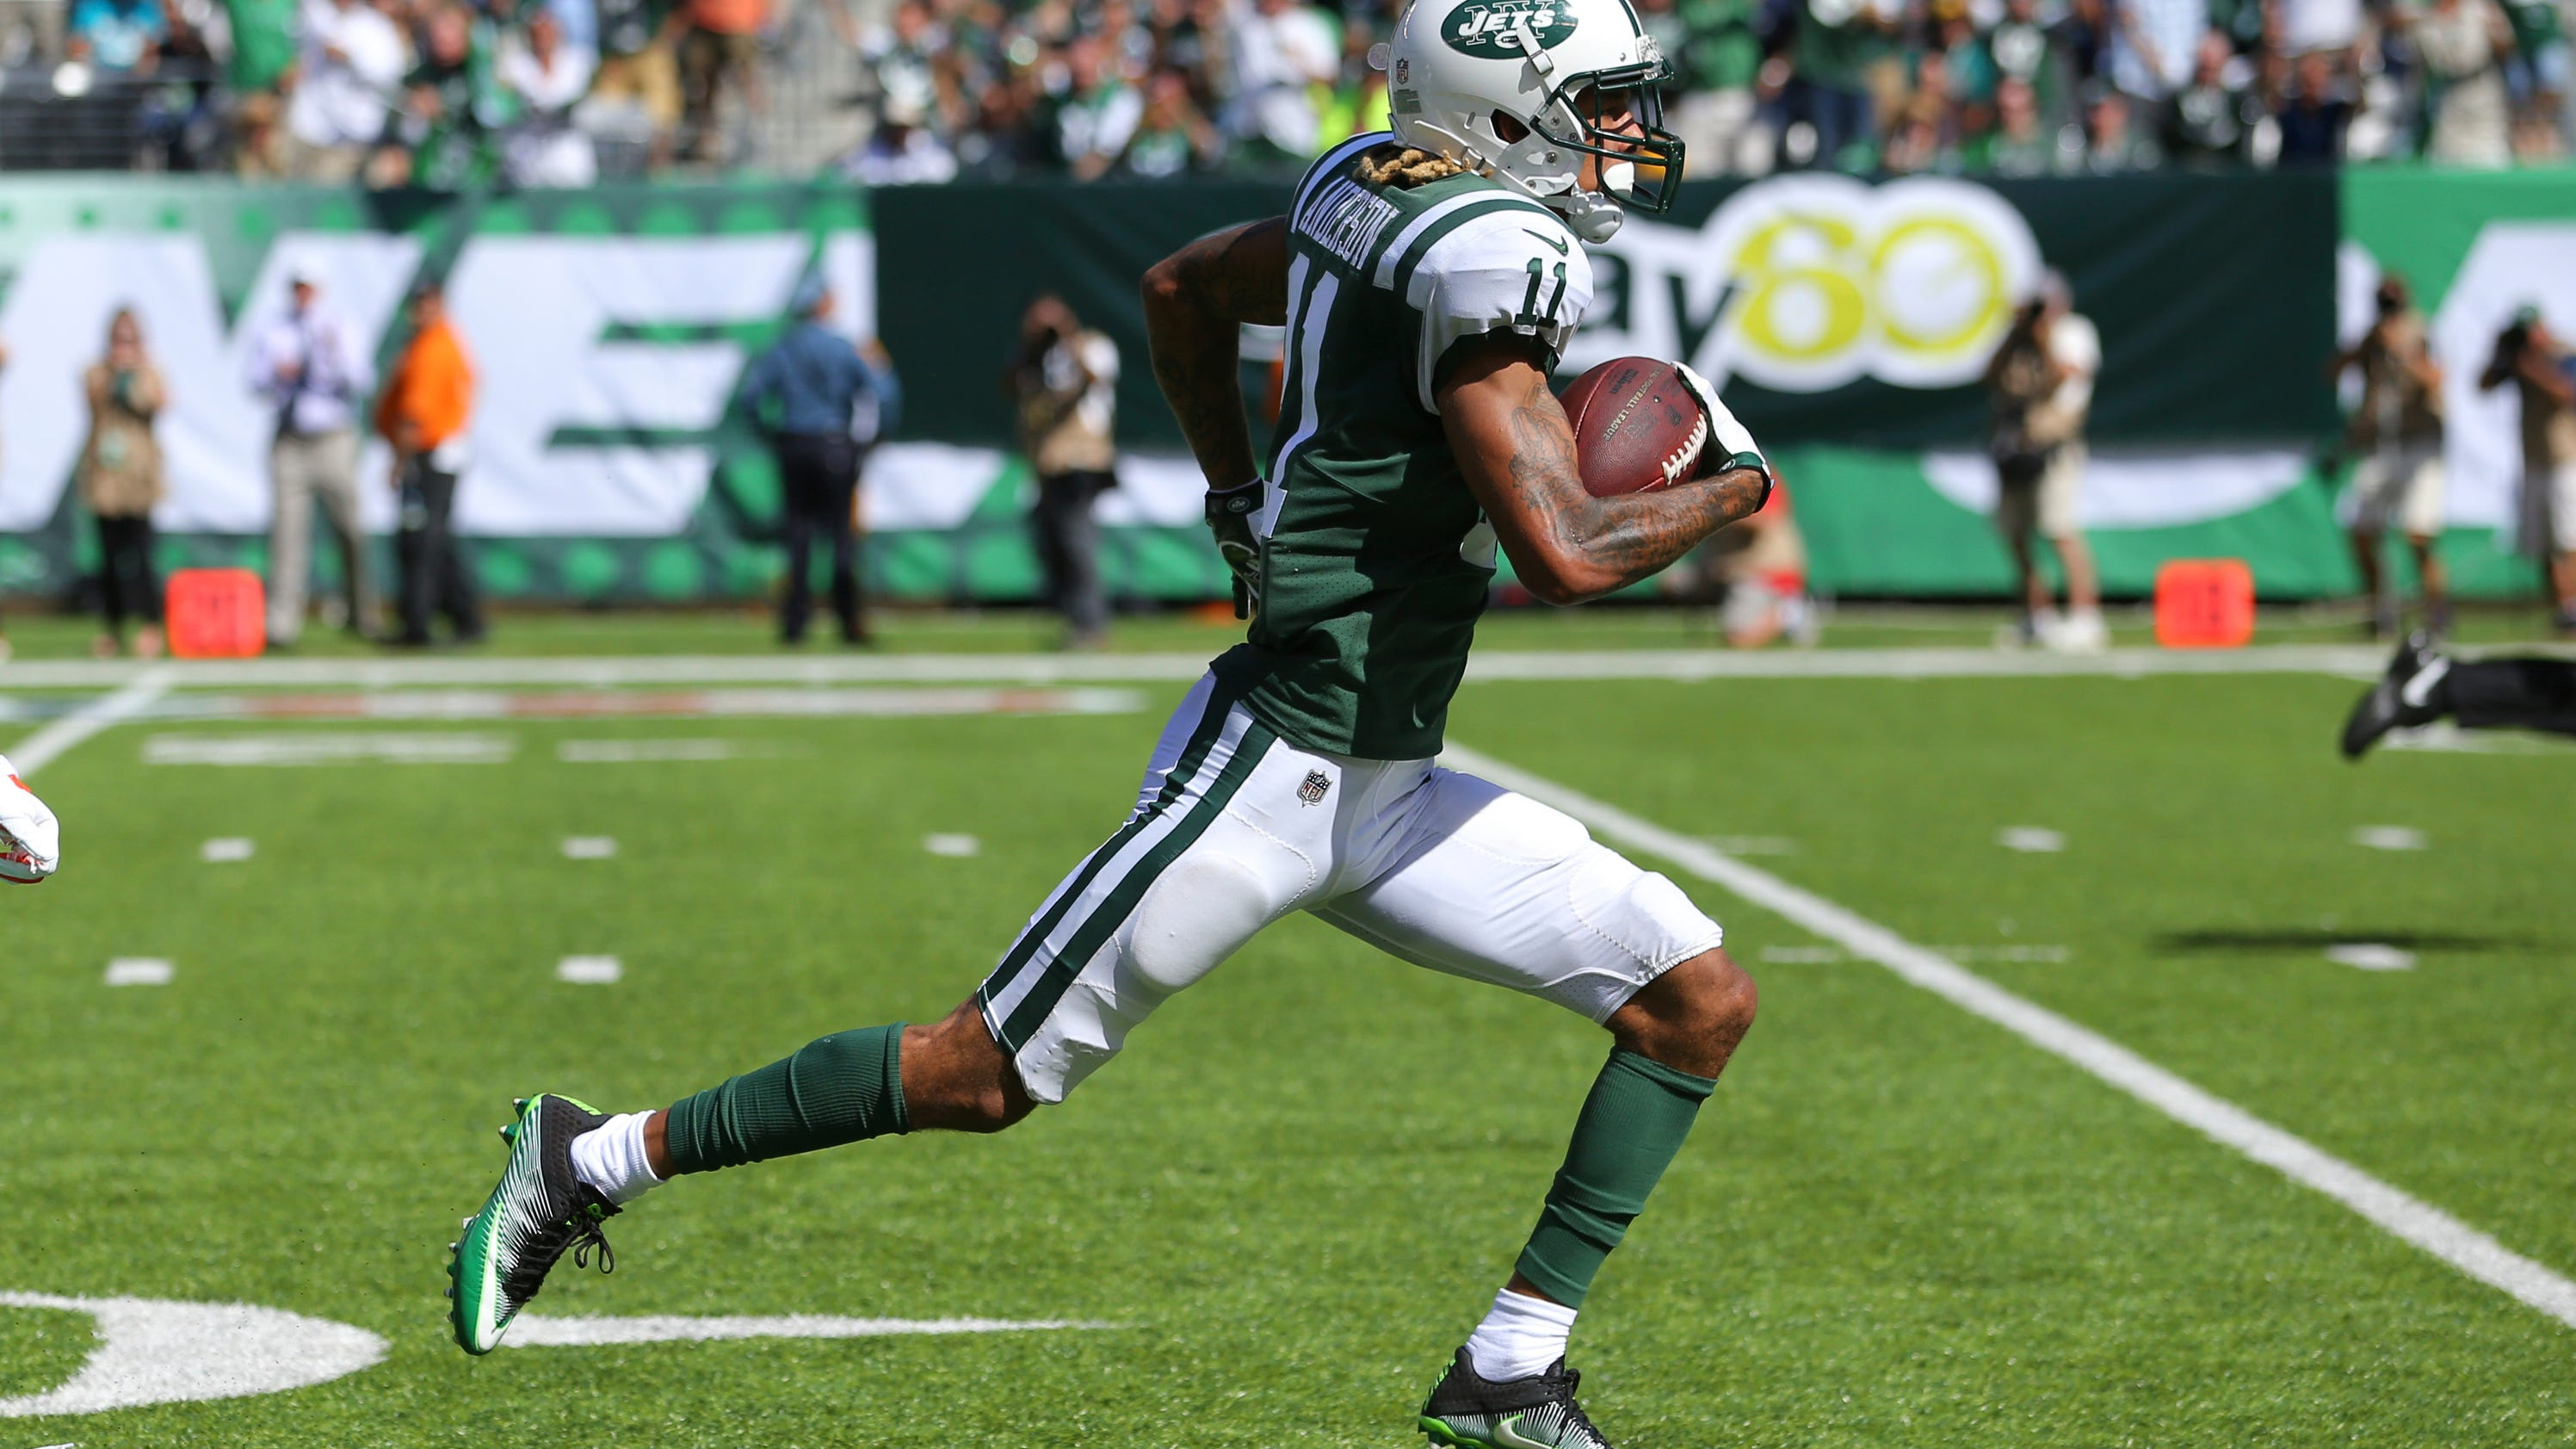 Ap_dolphins_jets_football_94220175